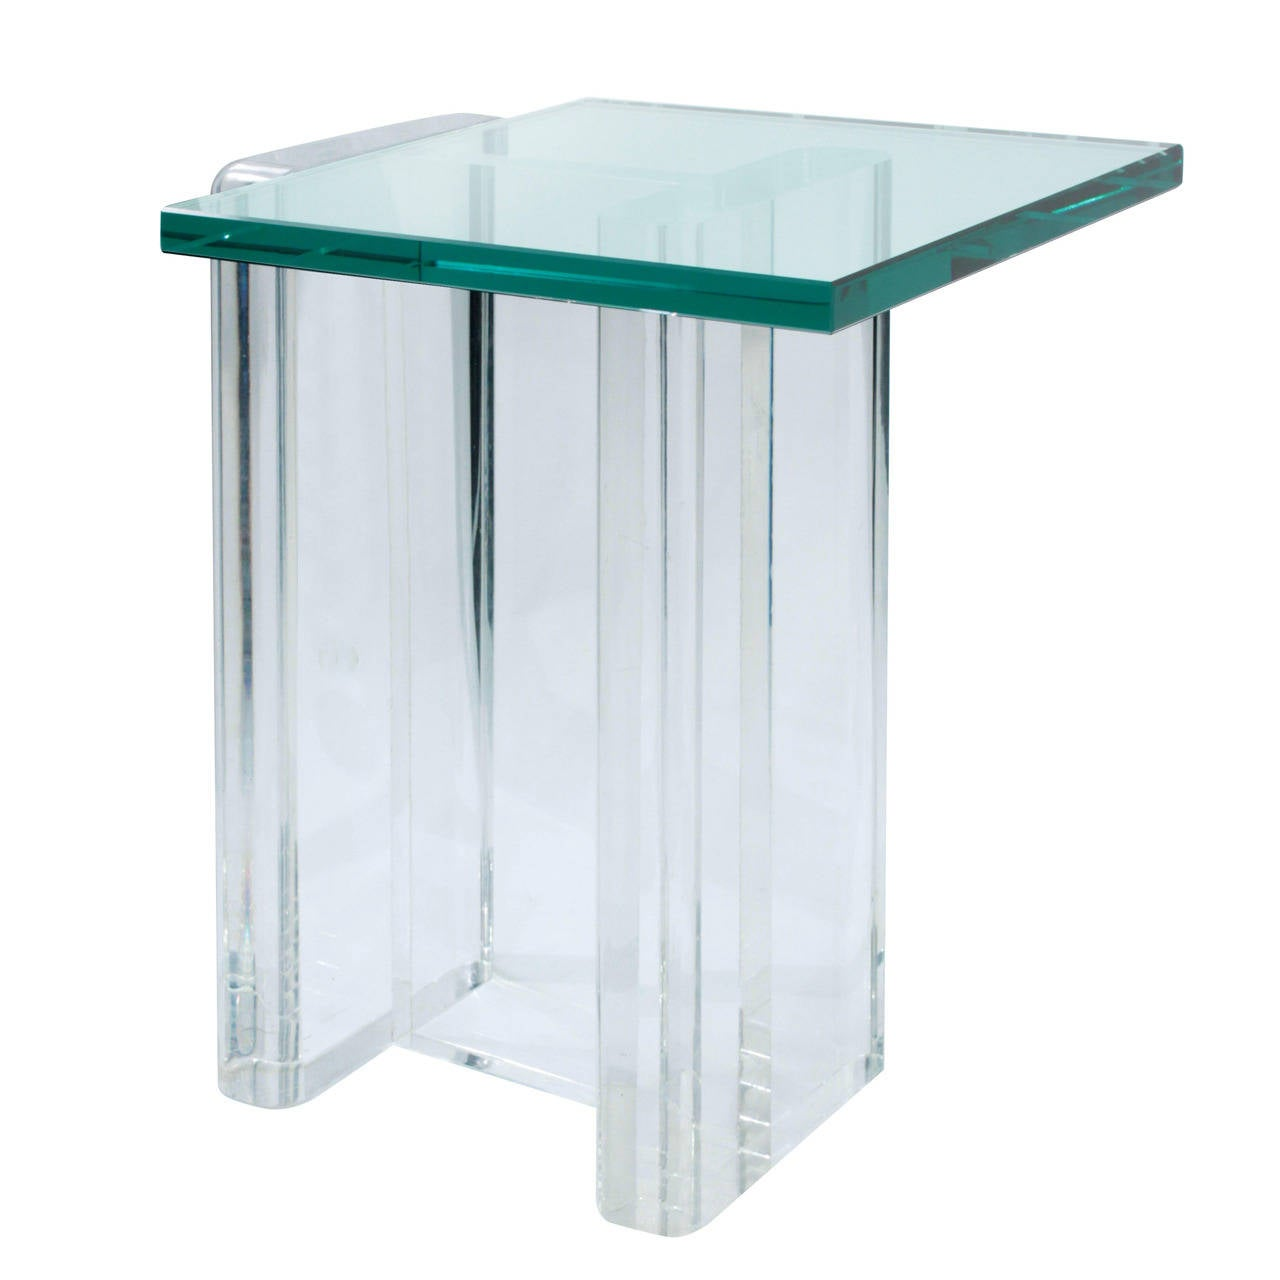 I beam lucite side table with glass top at 1stdibs for Glass top side table